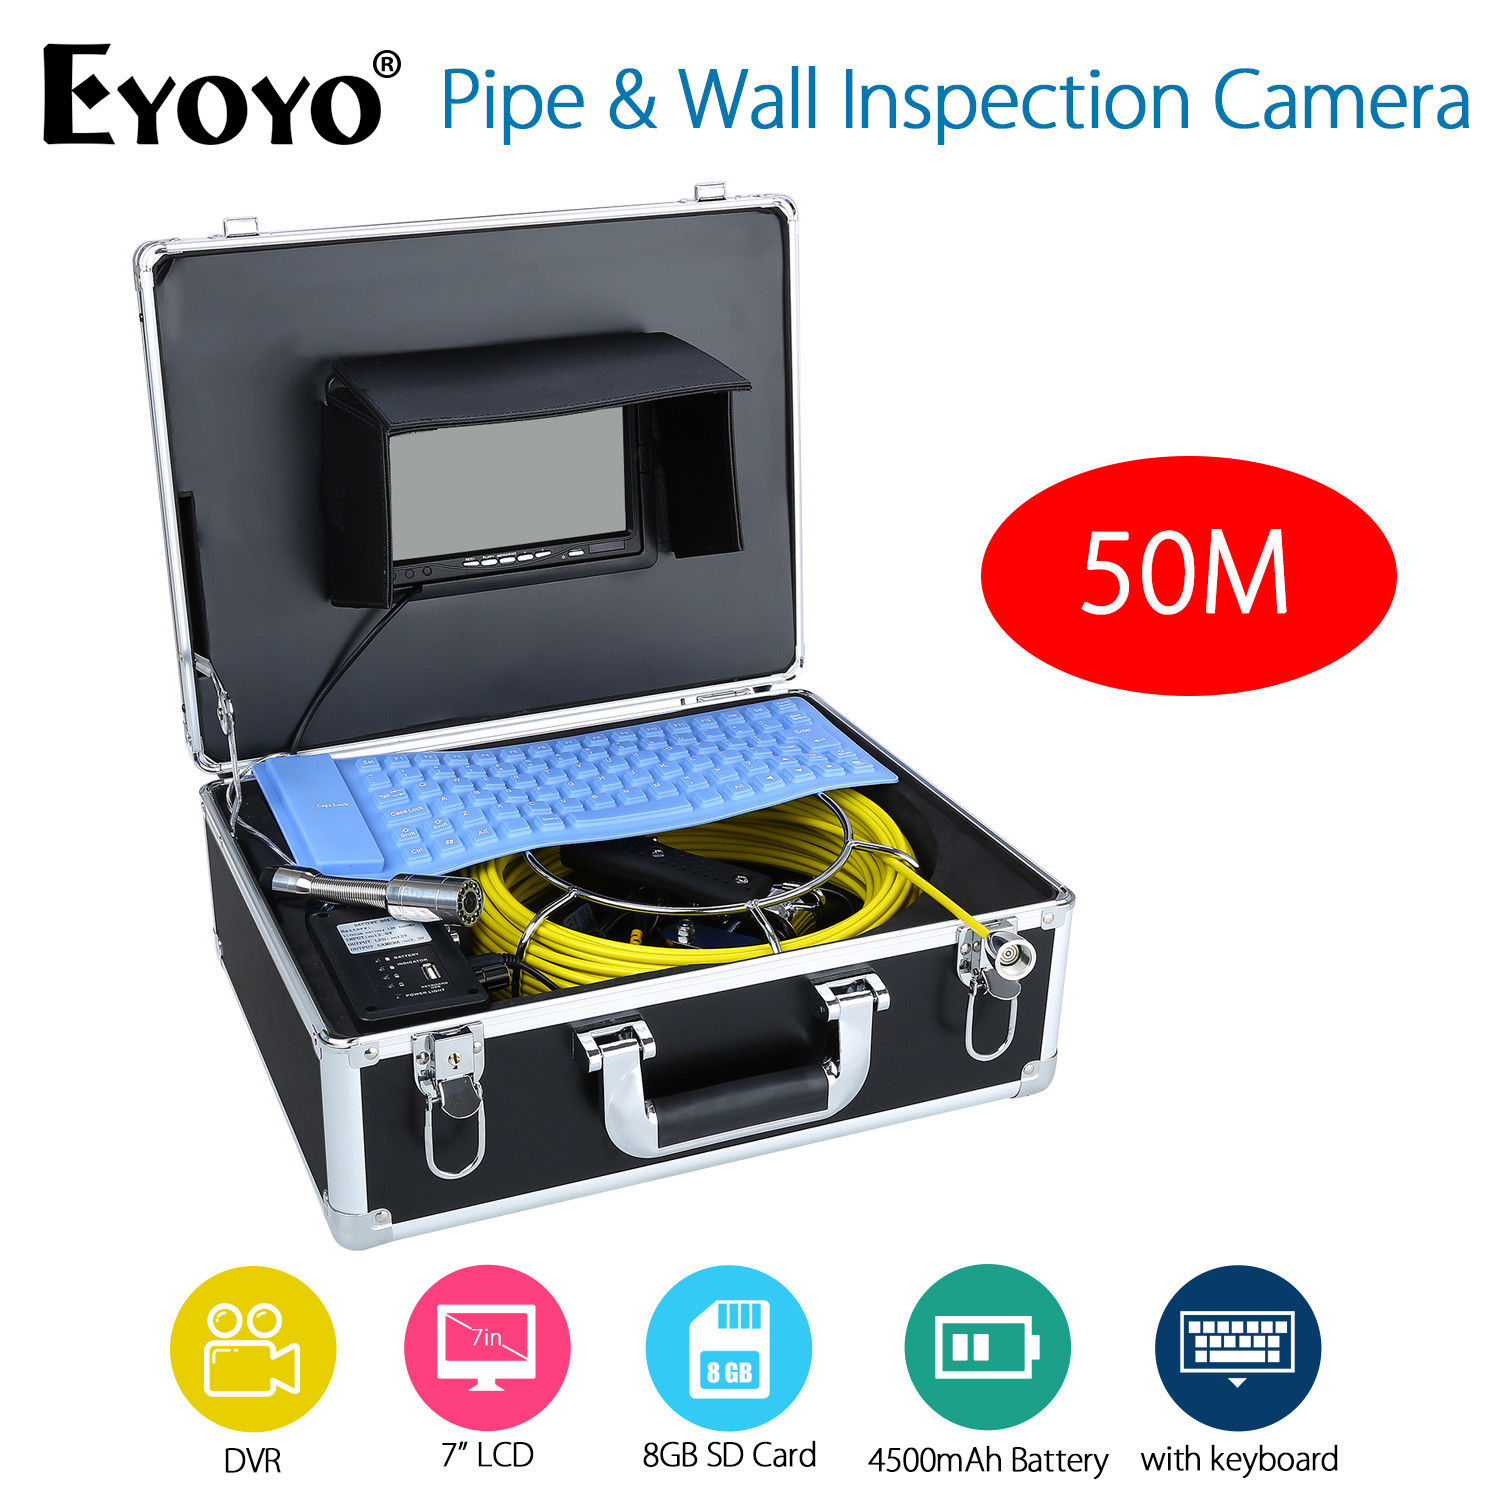 Eyoyo 50M 7 LCD DVR HD 1000TVL Pipe Wall Inspection Camera Endoscope Snake Sewer Drain Cam Video Recording w/Portable Keyboard drain sewer wall cave pipe inspection dvr camera pipe endoscope borescope 20m 50m cable pipeline sewage snake camera